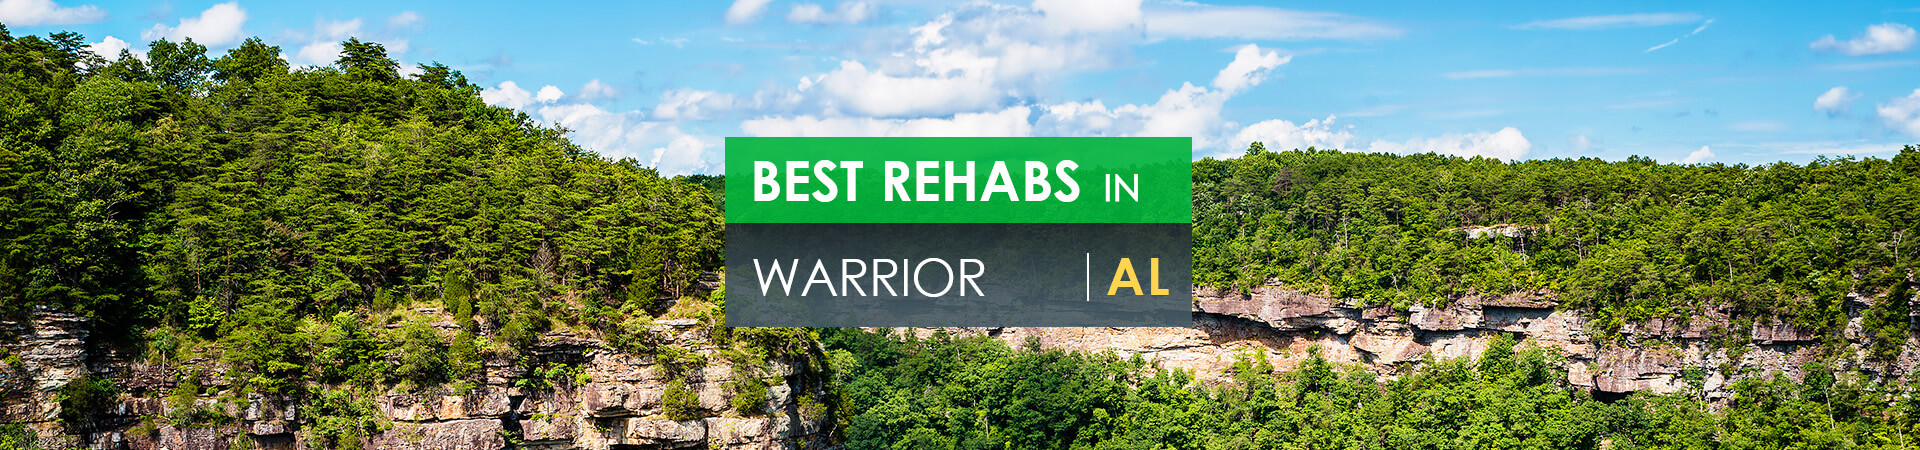 Best rehabs in Warrior, AL